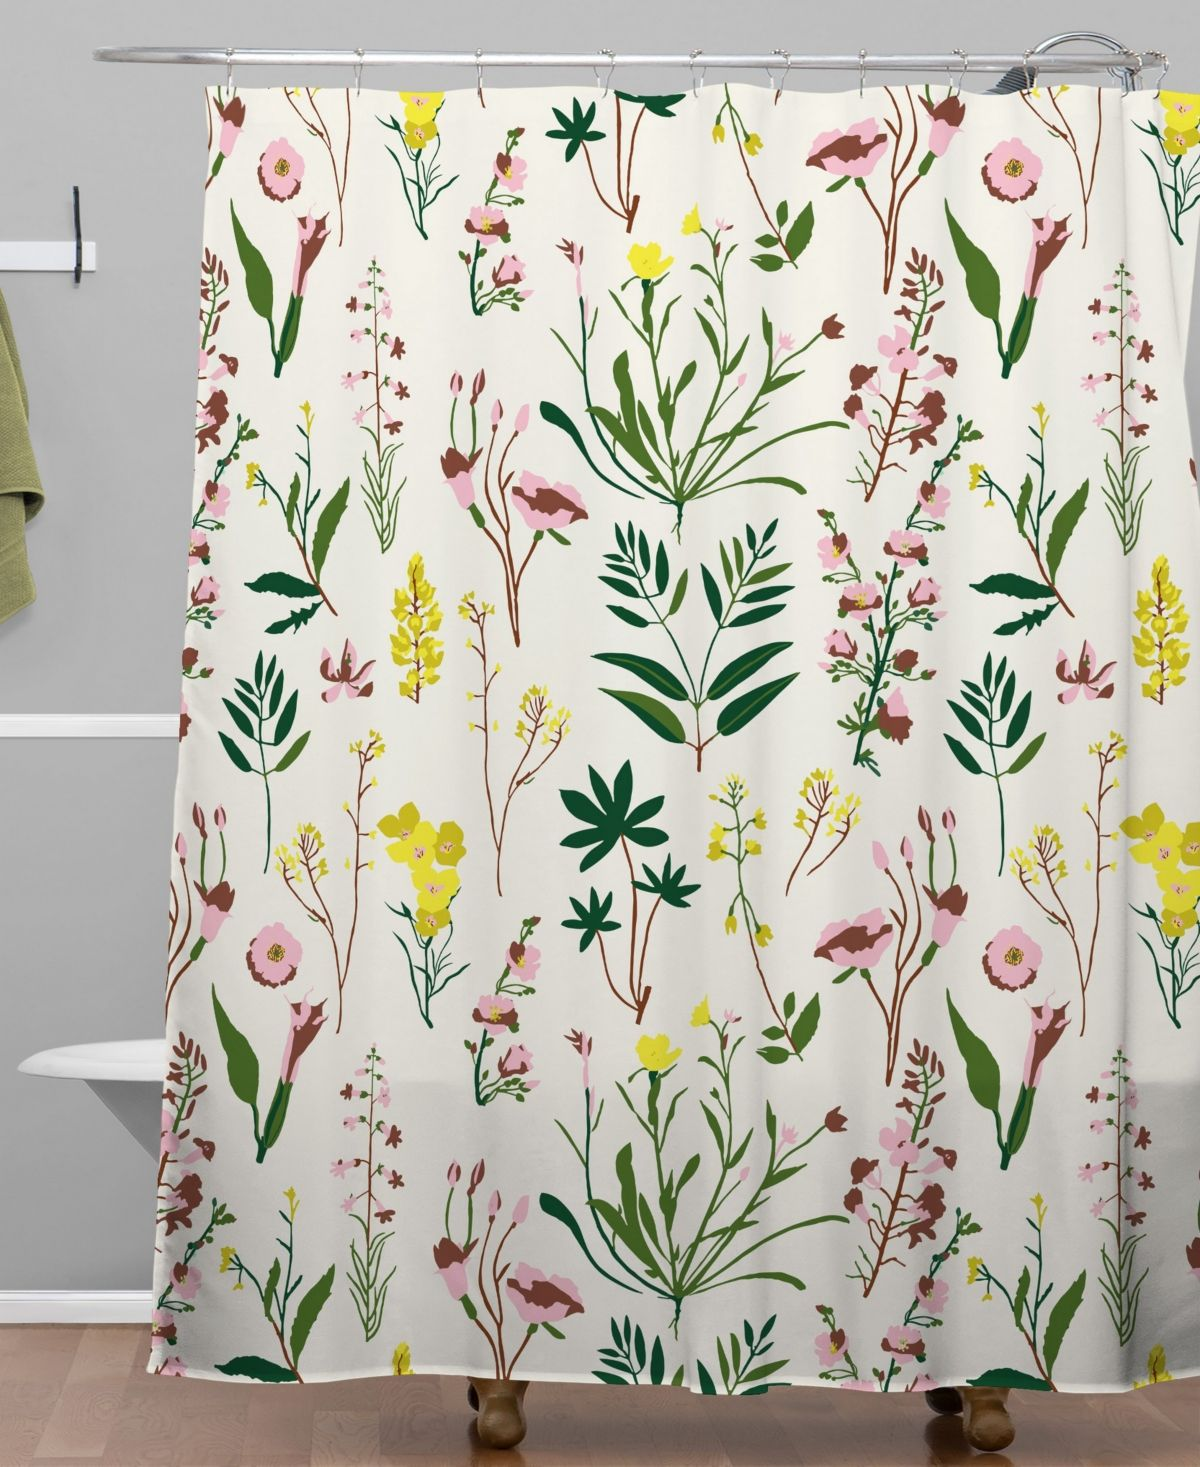 Deny Designs Holli Zollinger Wildflower Study Light Shower Curtain Reviews Shower Curtains Bed Bath Macy S Wildflower Baby Shower Cheap Shower Curtains Curtains